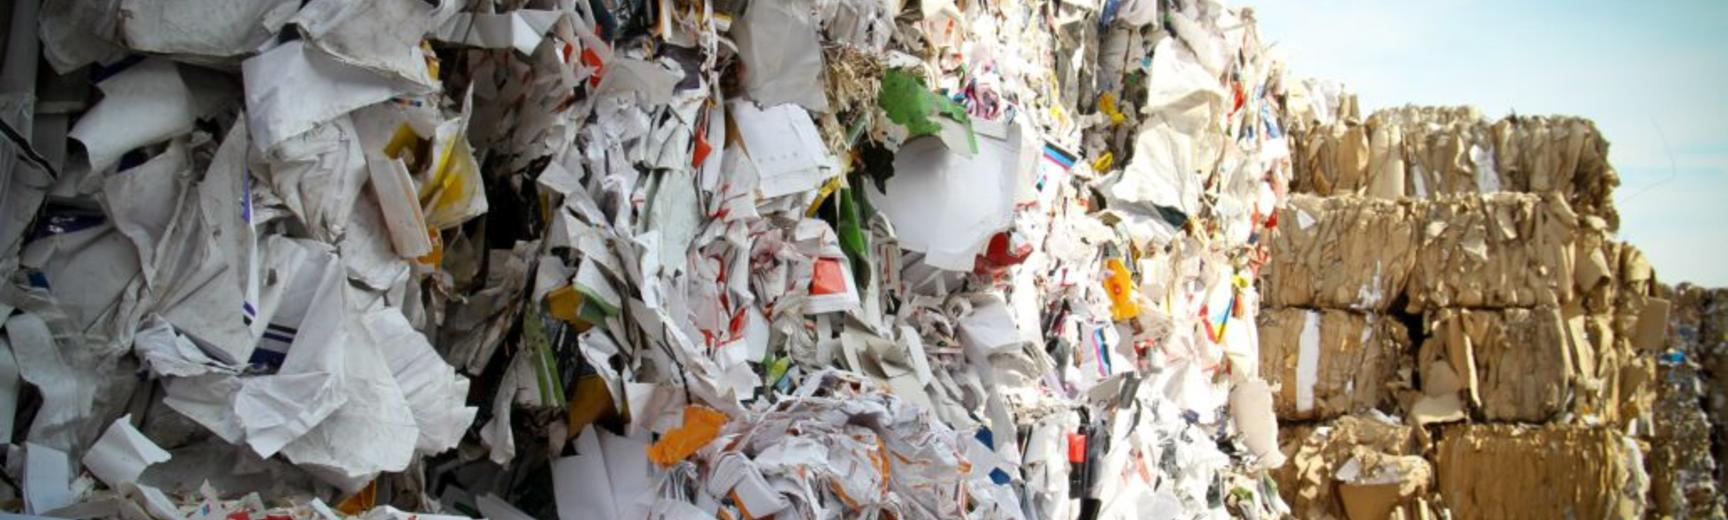 pile of rubbish on landfill site